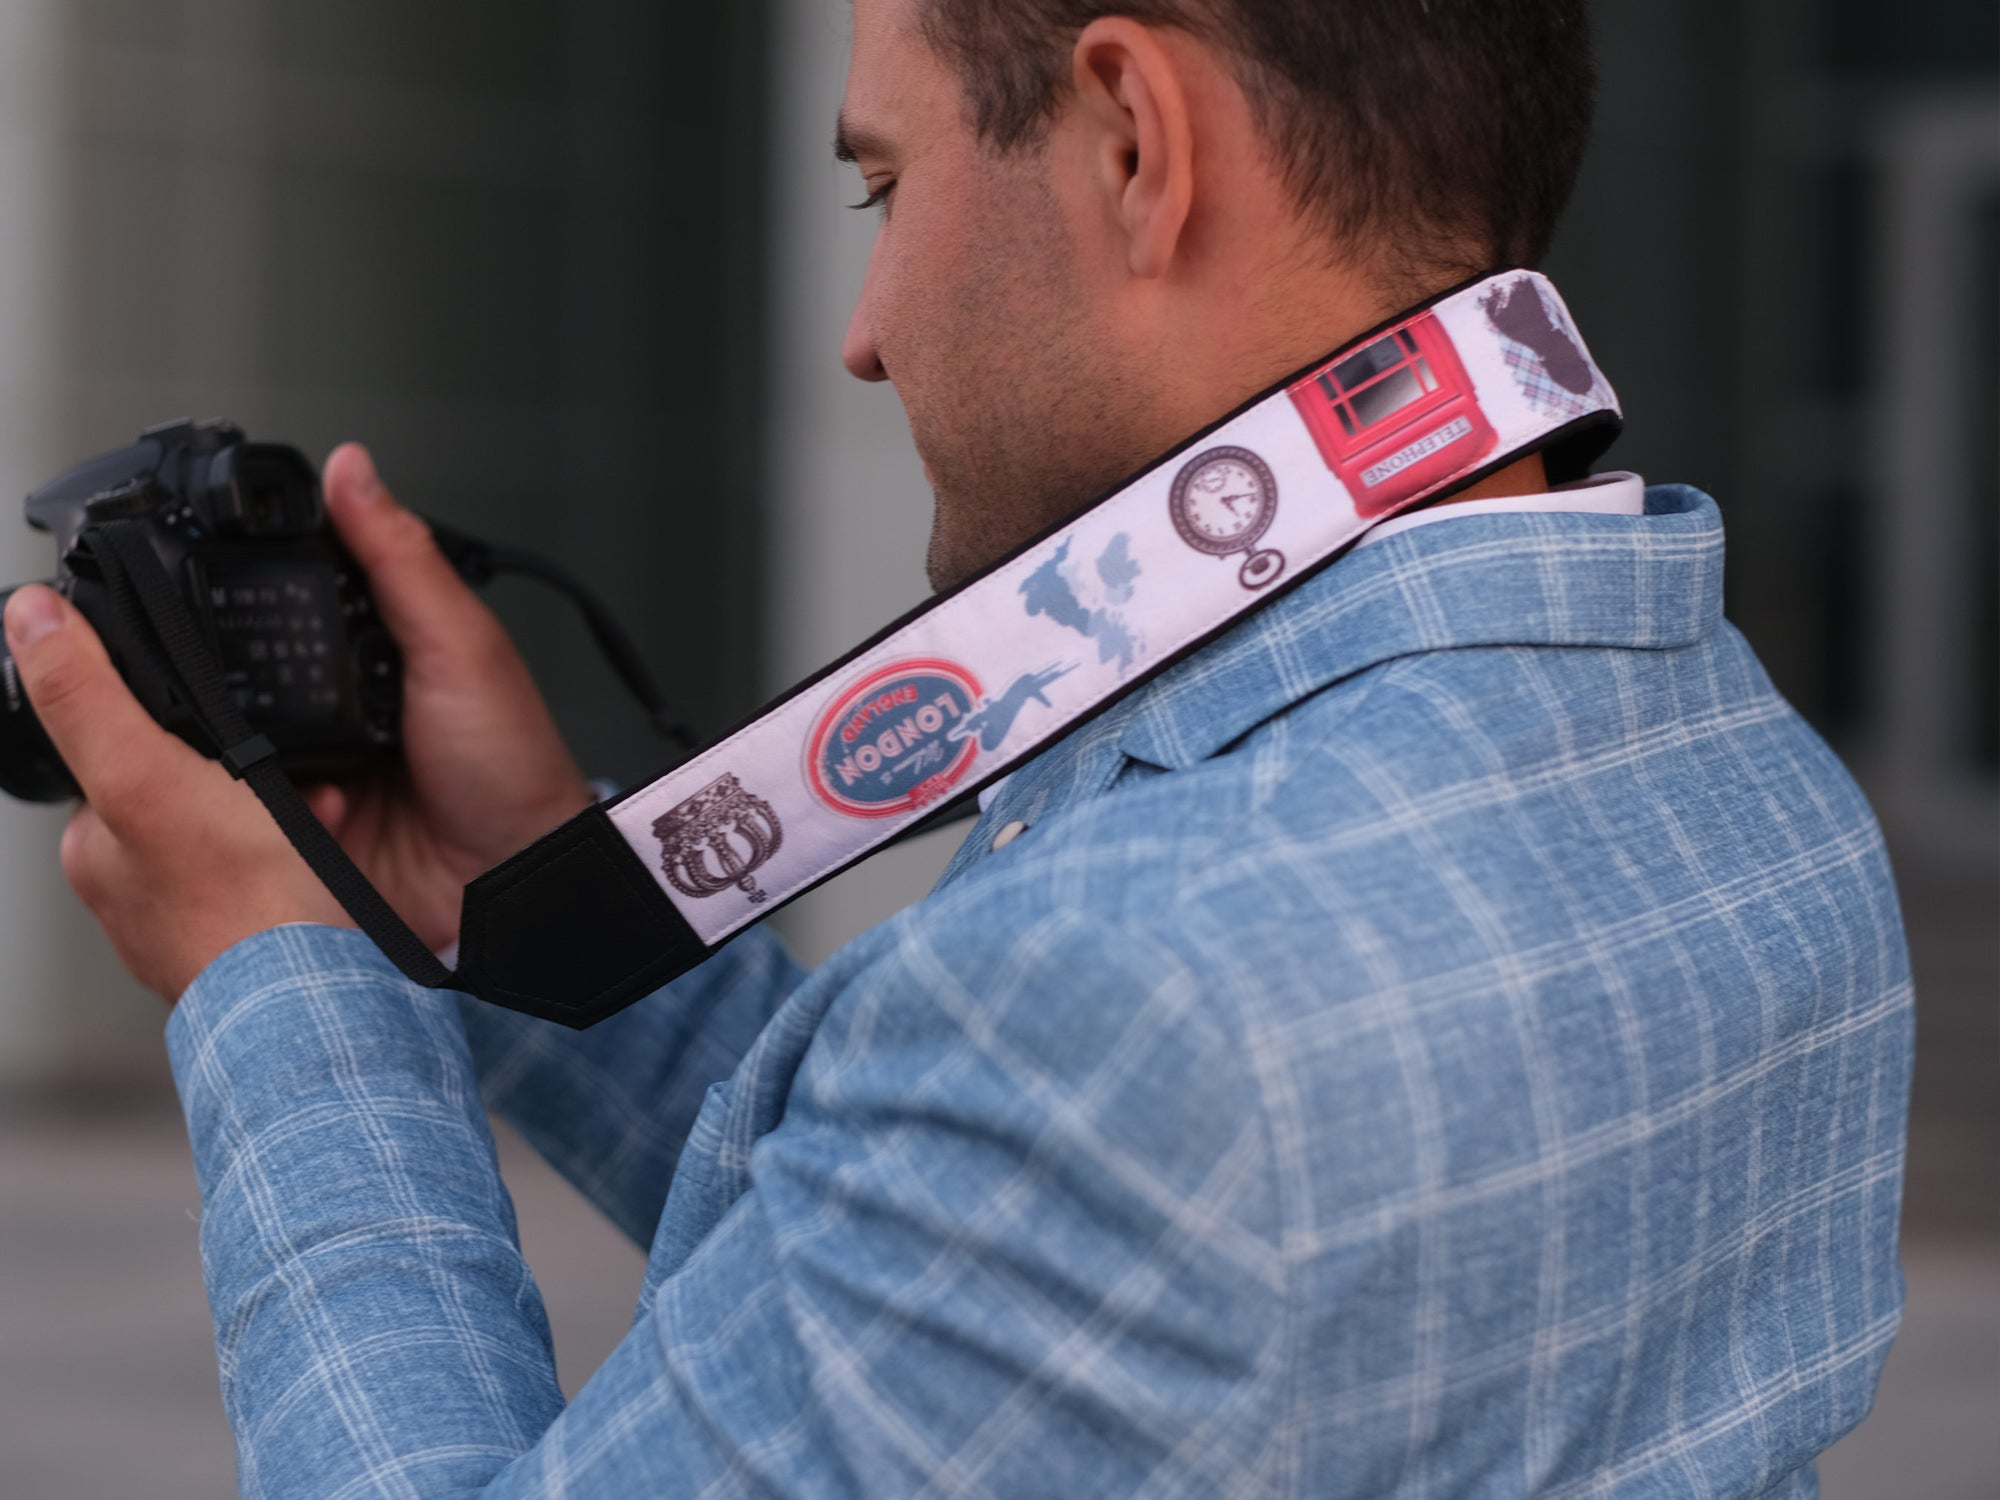 Personalized camera strap with the British flag, Big Ben, Queen's Crown. Souvenir for London tourists.